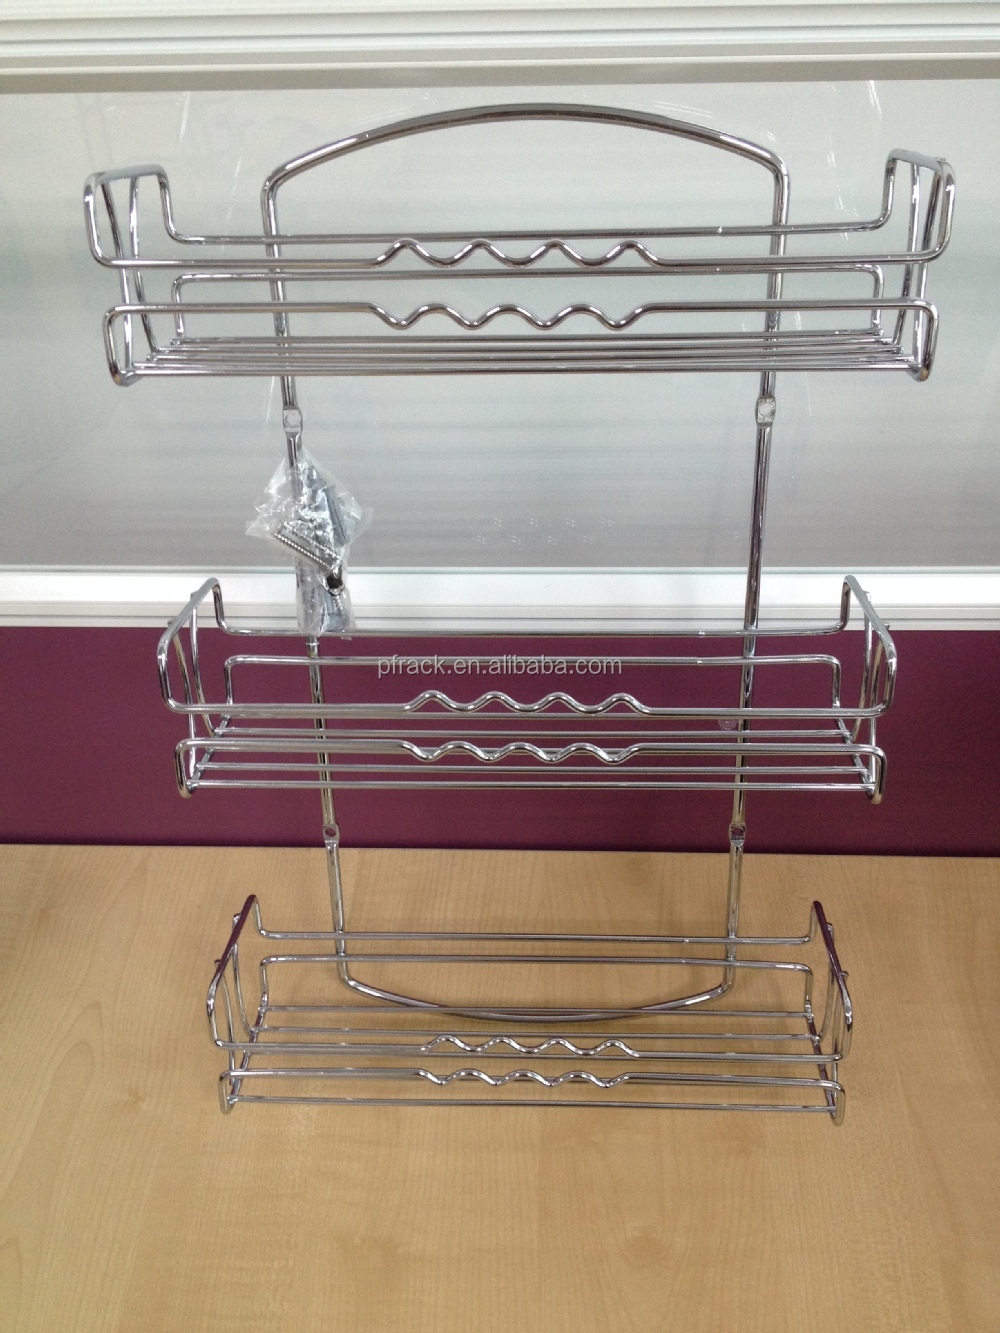 PF-KR0005 HOT SALE!! stainless steel kitchen spice rack